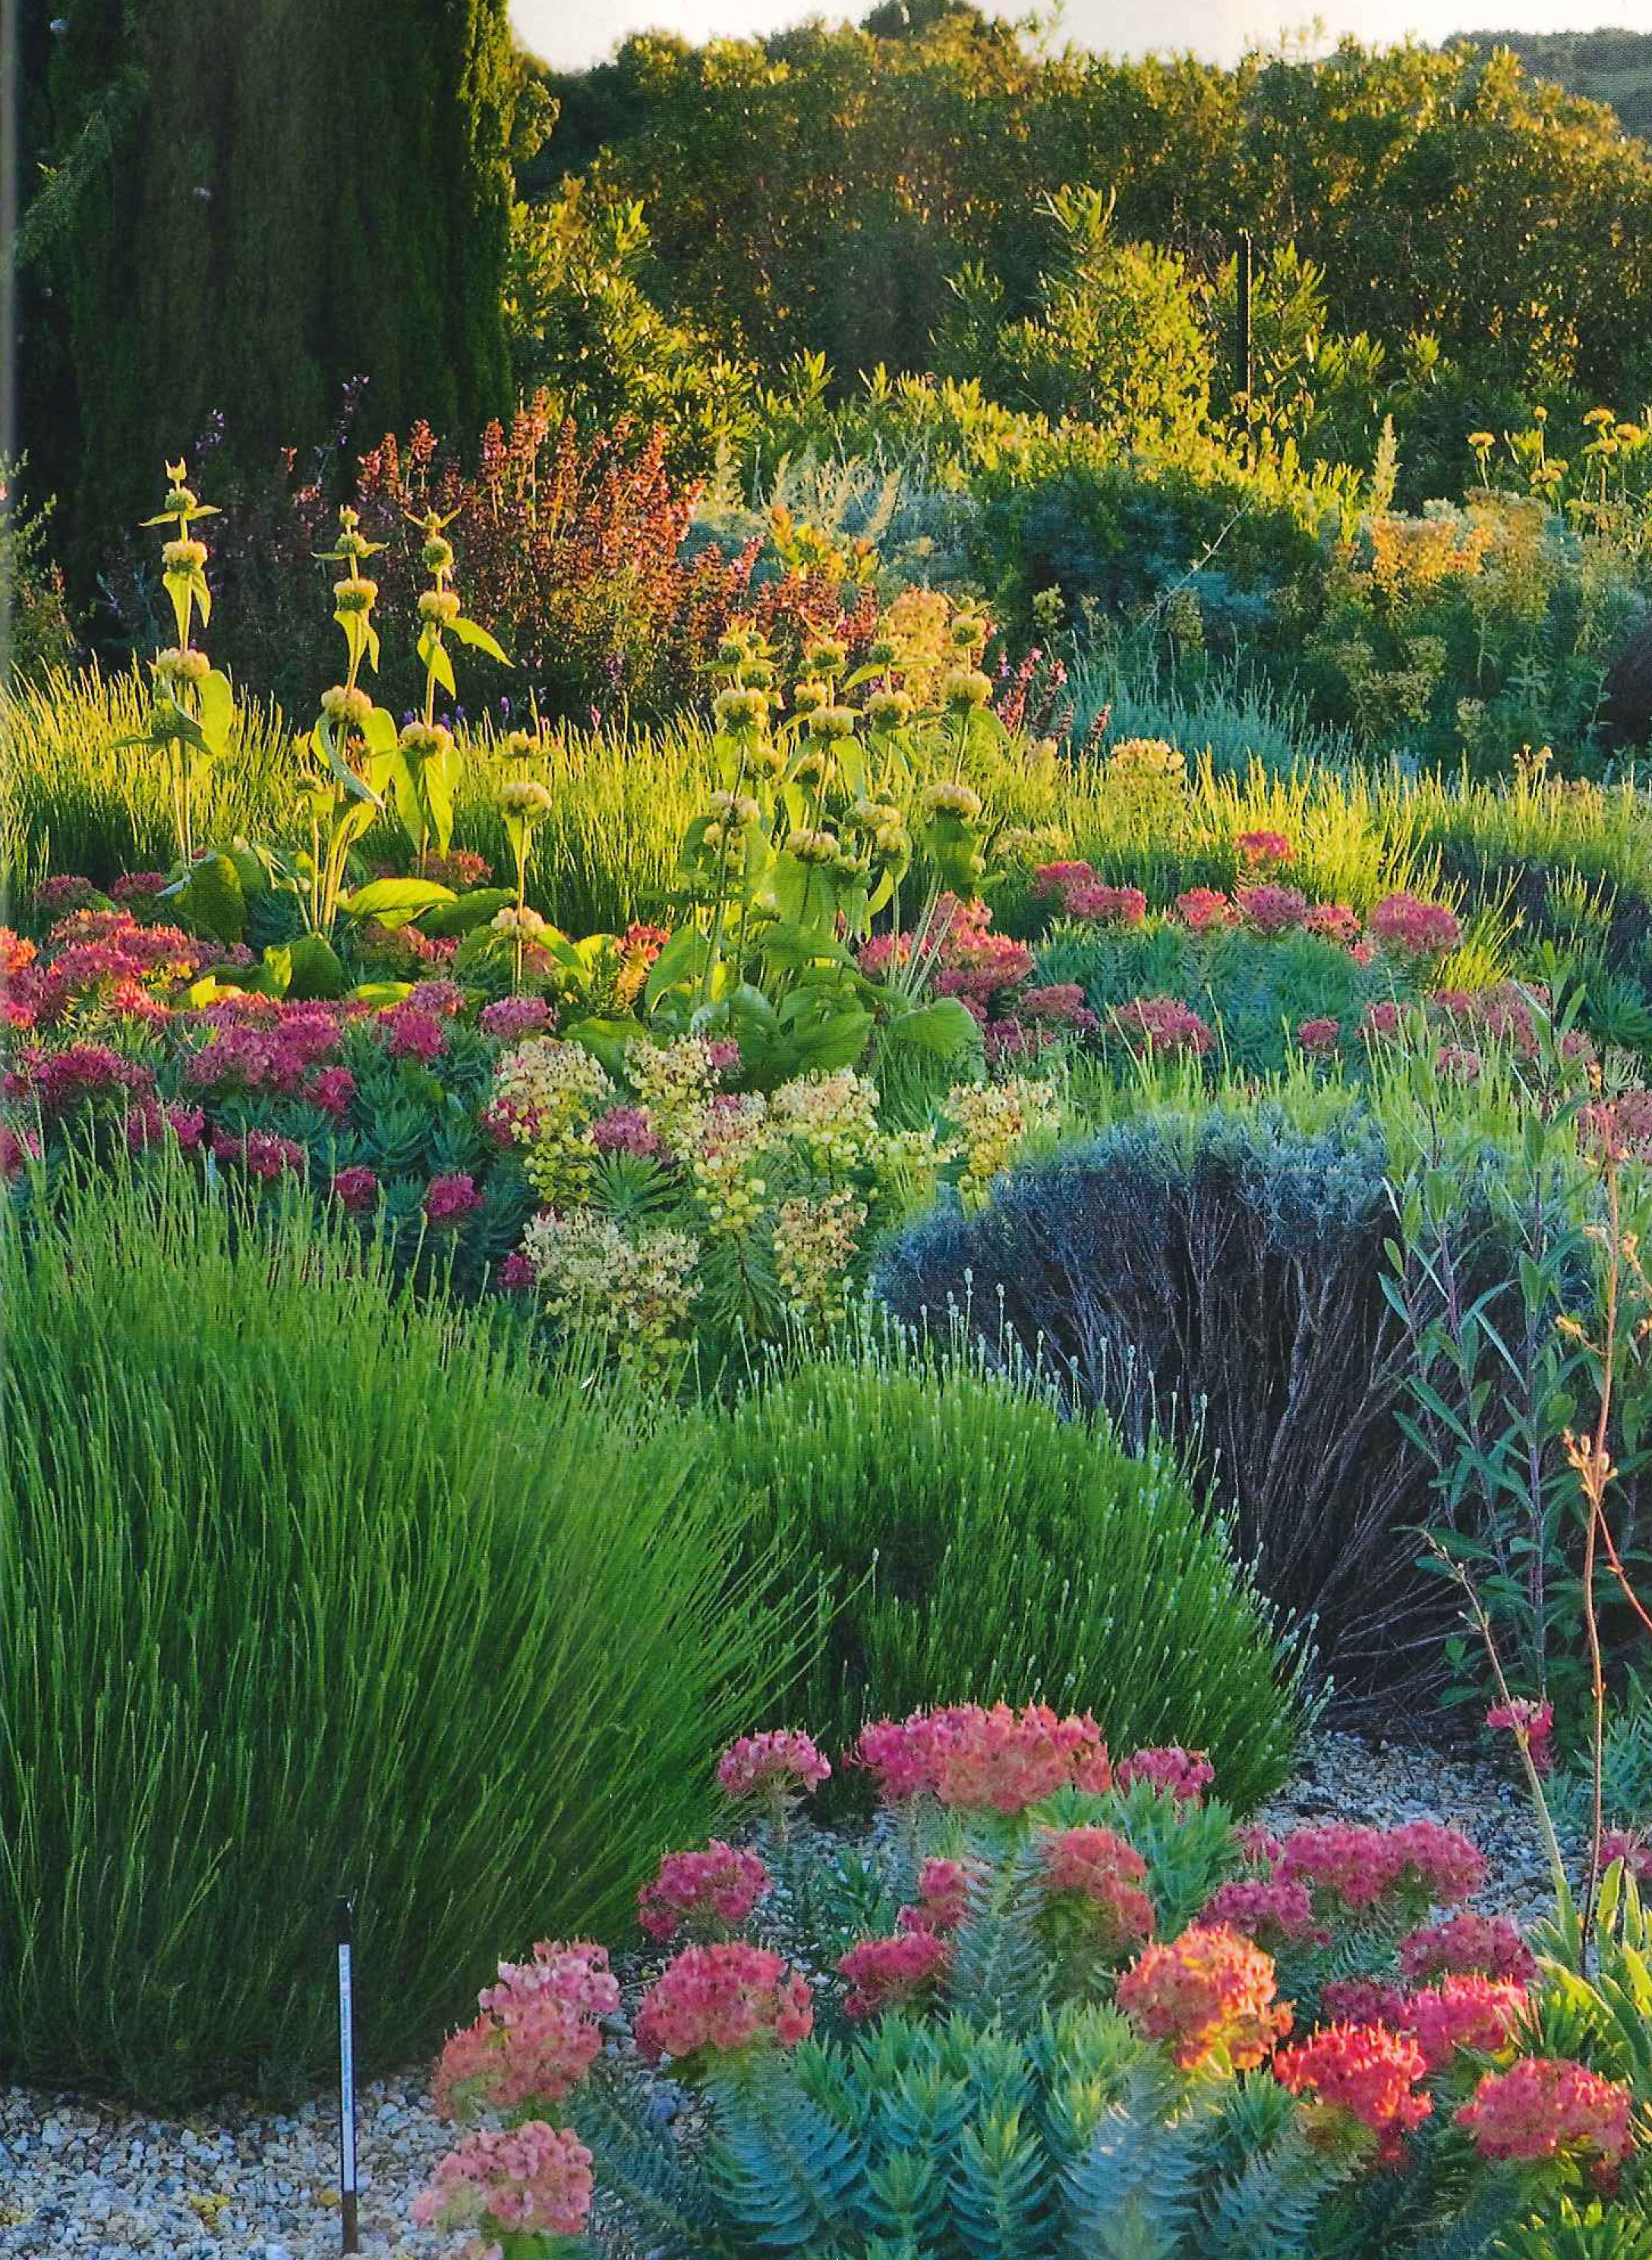 beth chatto gravel garden book on 65 beth chatto ideas in 2021 beth chatto plants garden design 65 beth chatto ideas in 2021 beth